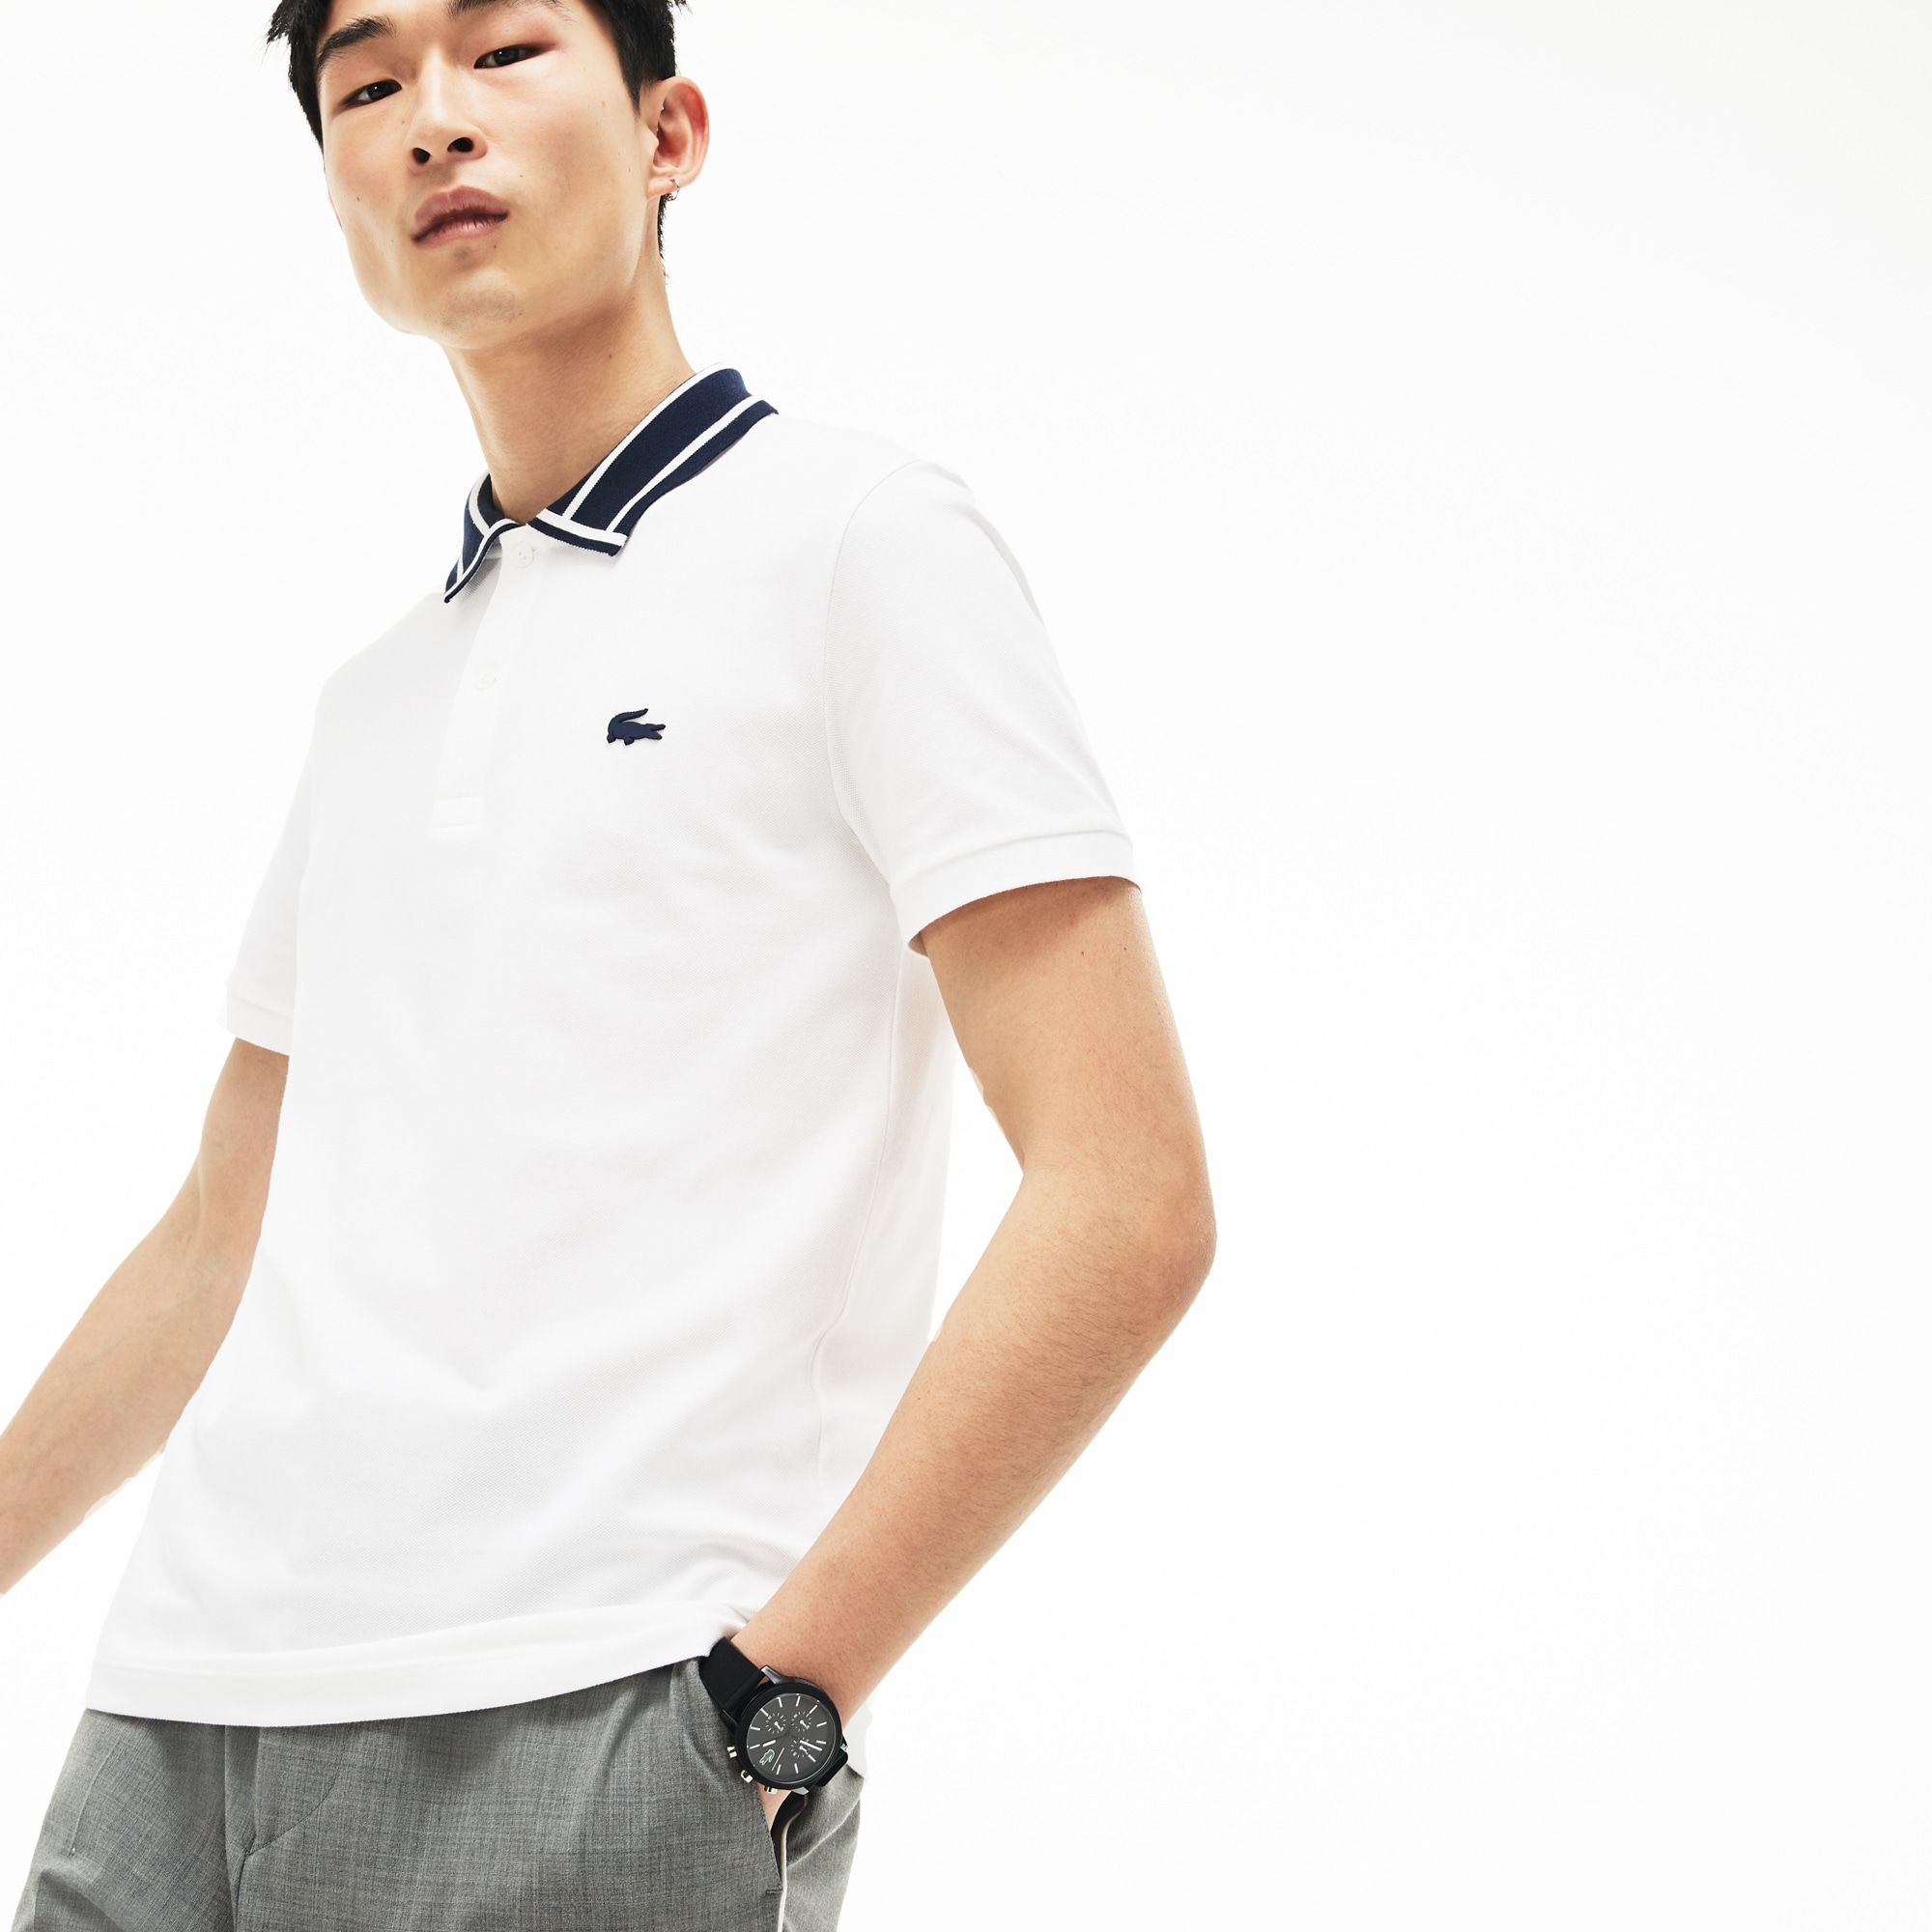 2b7f77f60 Men's Polo Shirts | Lacoste Polo Shirts for Men | LACOSTE